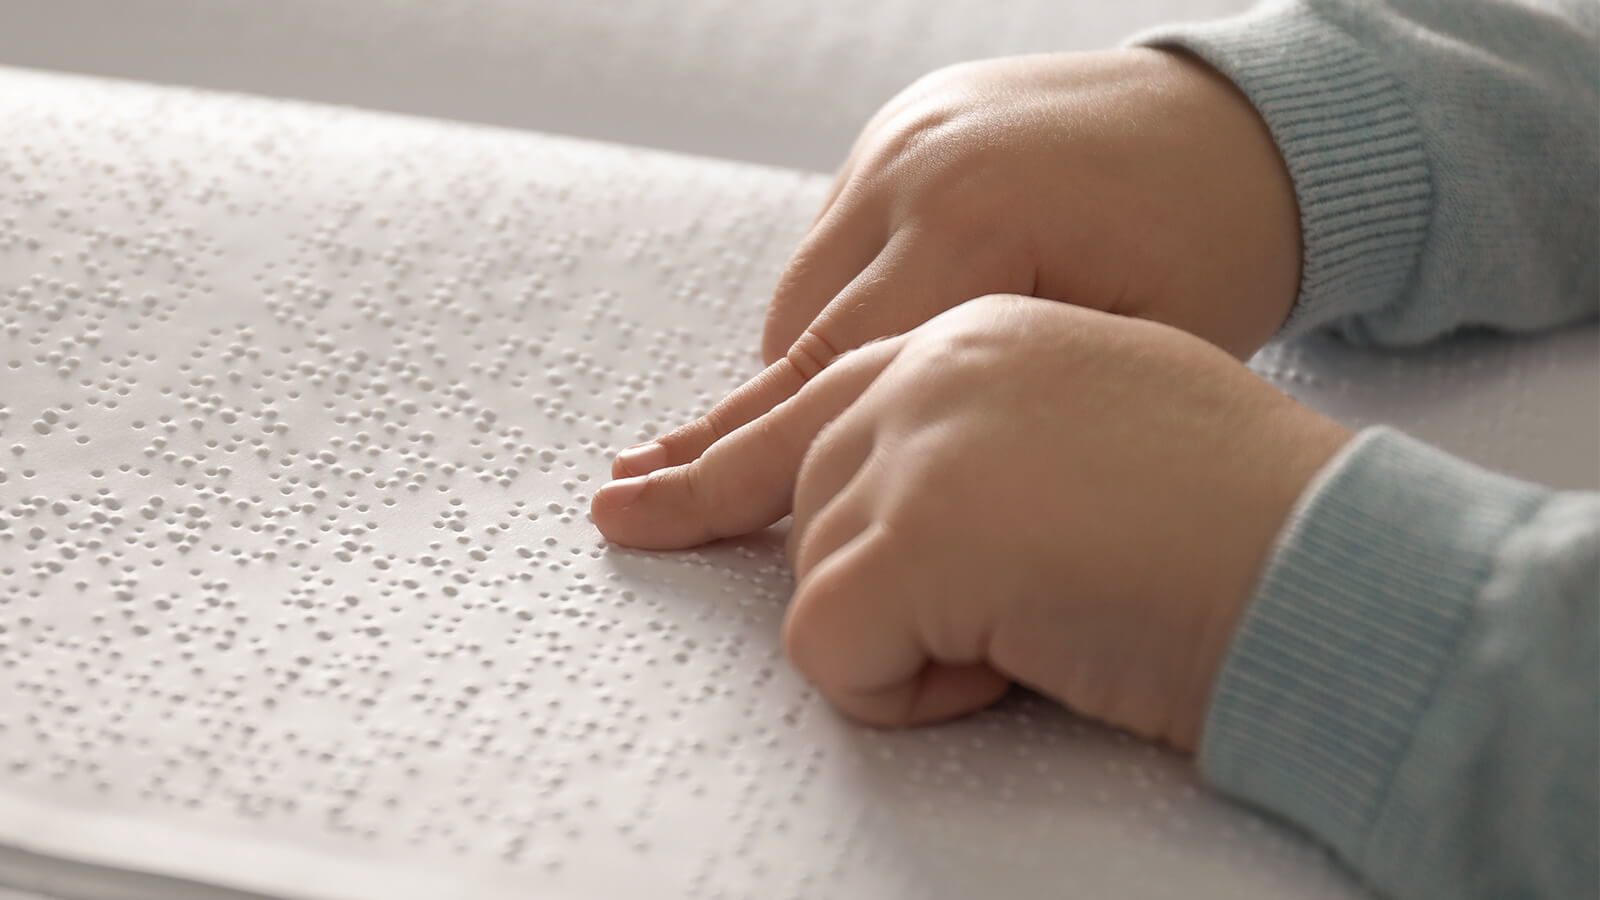 National Braille Week 2020